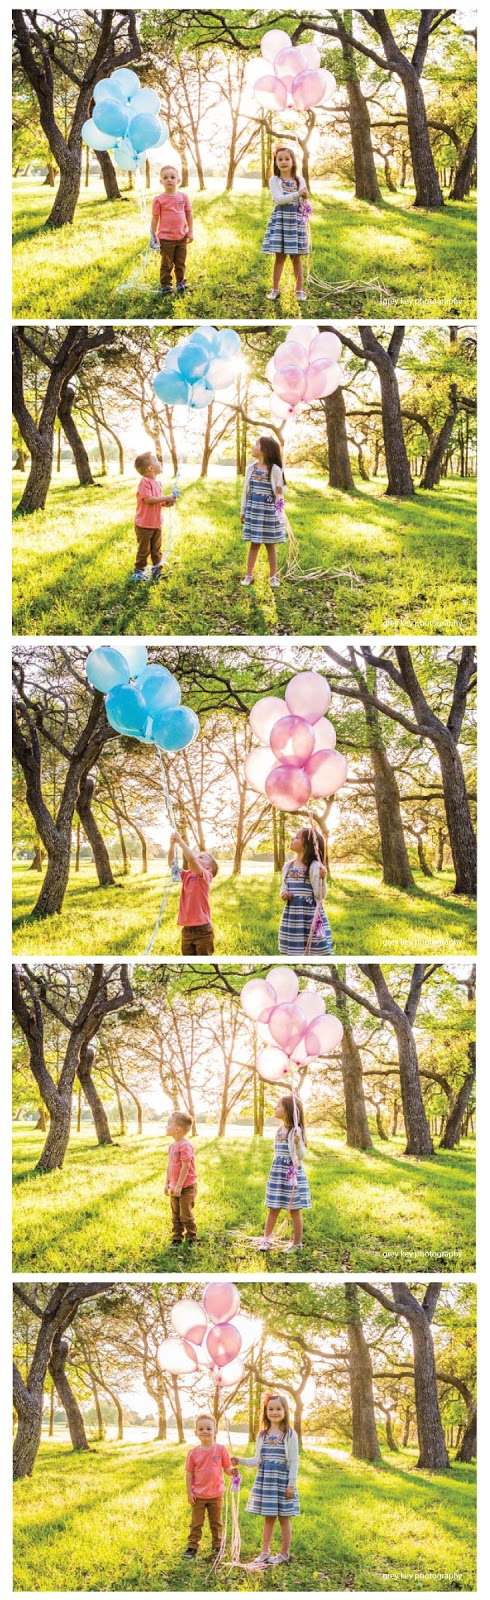 I'm dying over how adorable these photos are!  Such a great idea for baby gender reveal pictures!  |  mynameissnickerdoodle.com